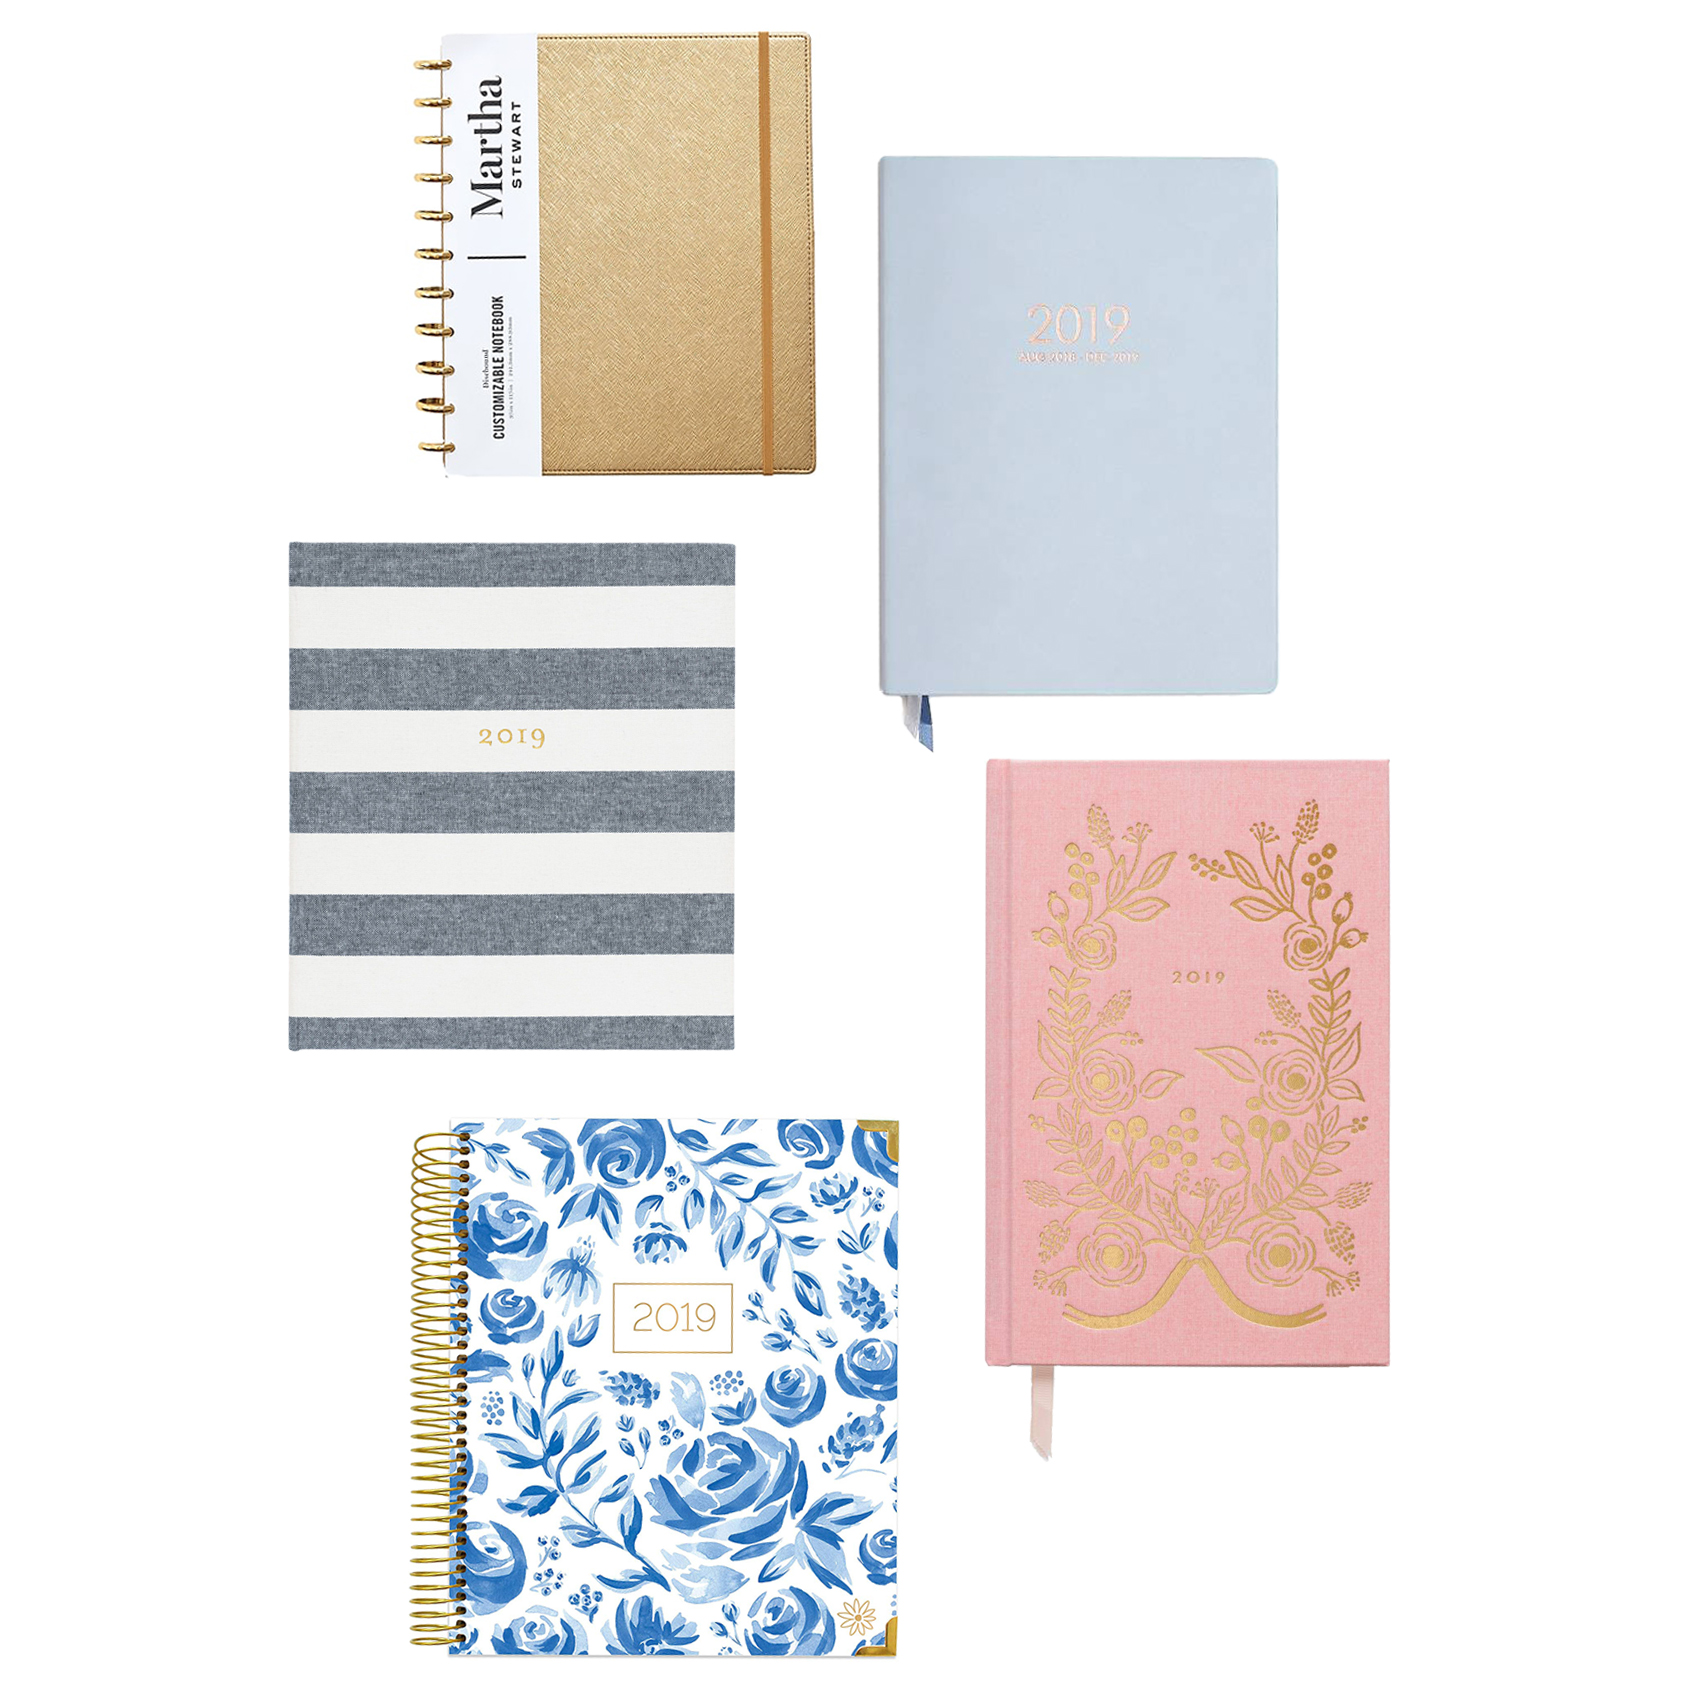 2019 planner collage blue and pink and gold